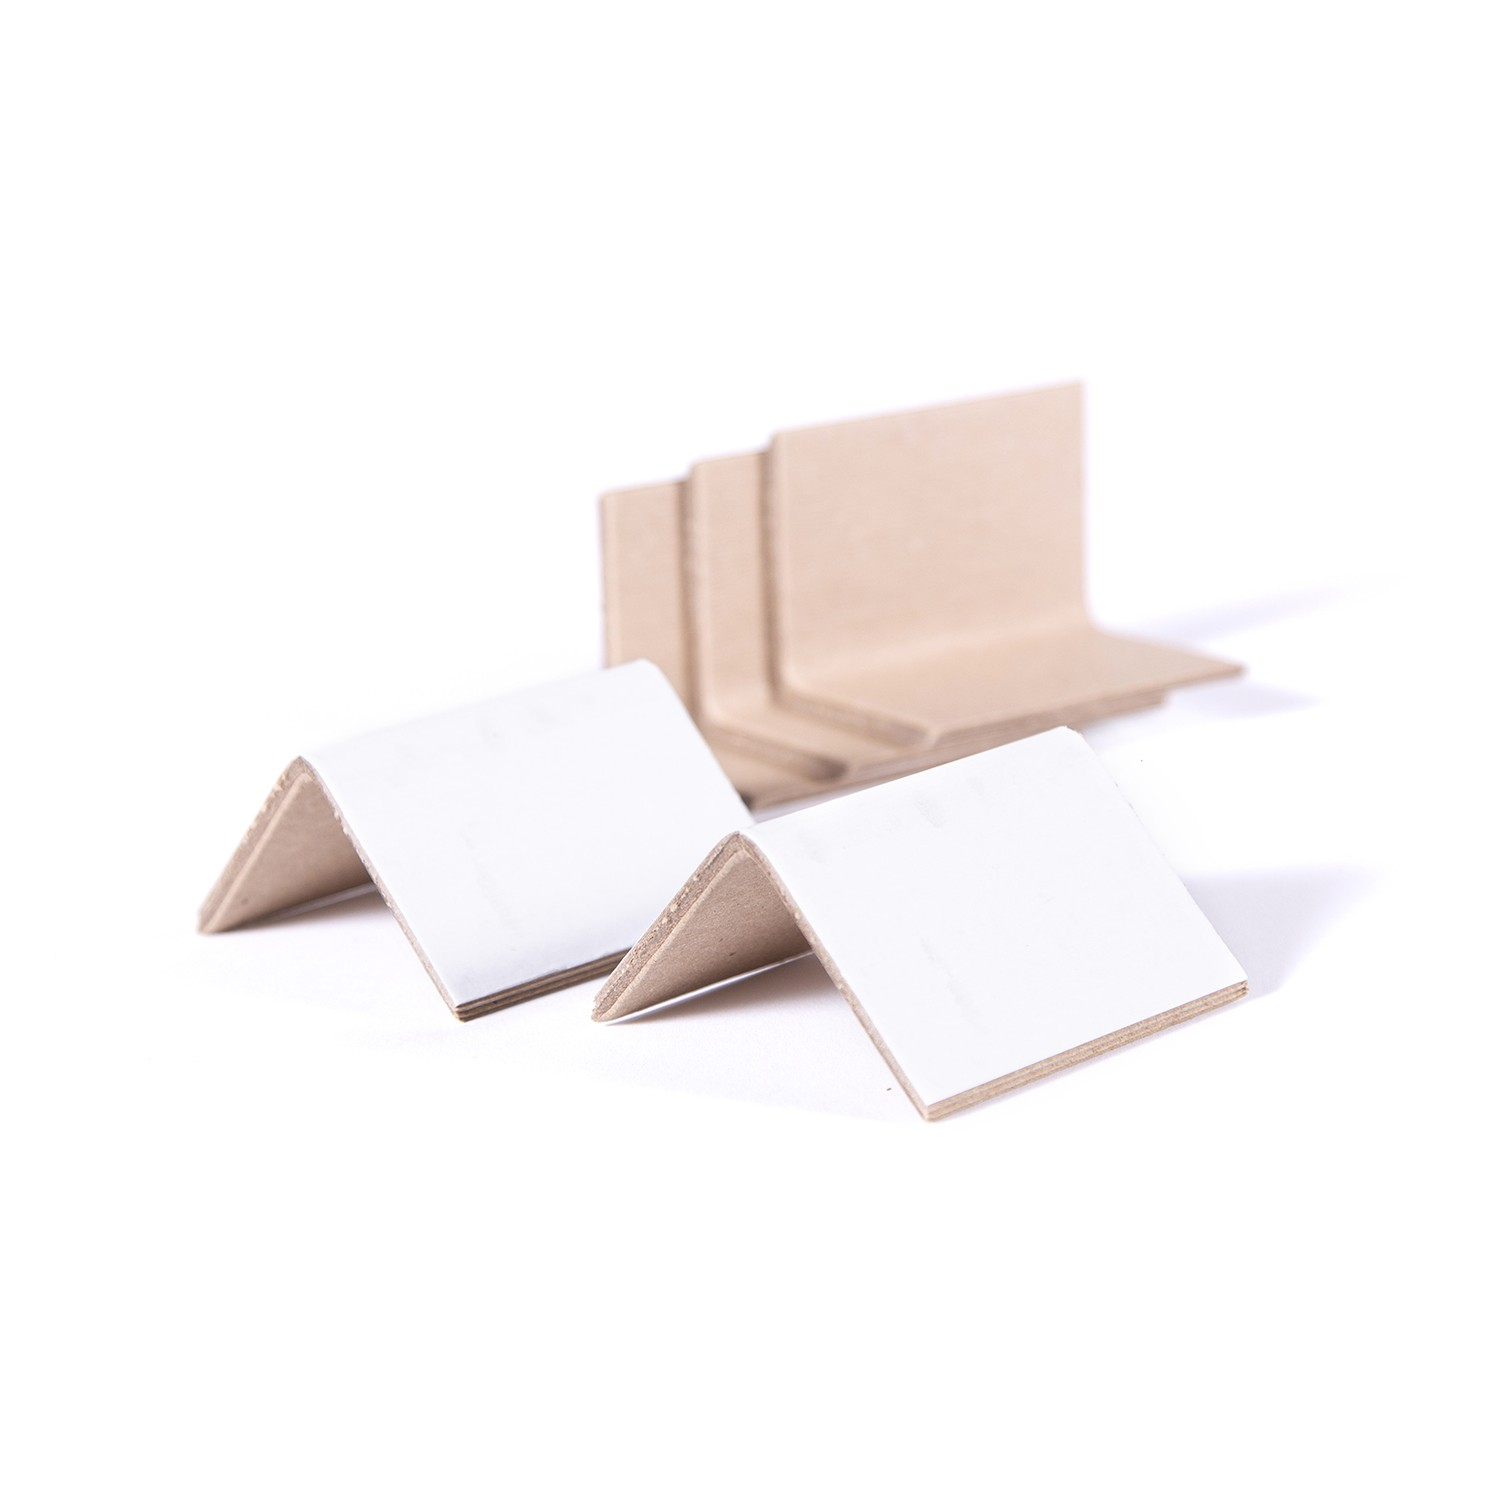 "TOTALPACK® 2 x 2 x 3"" - White Corrugated Strap Guards ""Carton Corner Protectors"" 1000 Units"